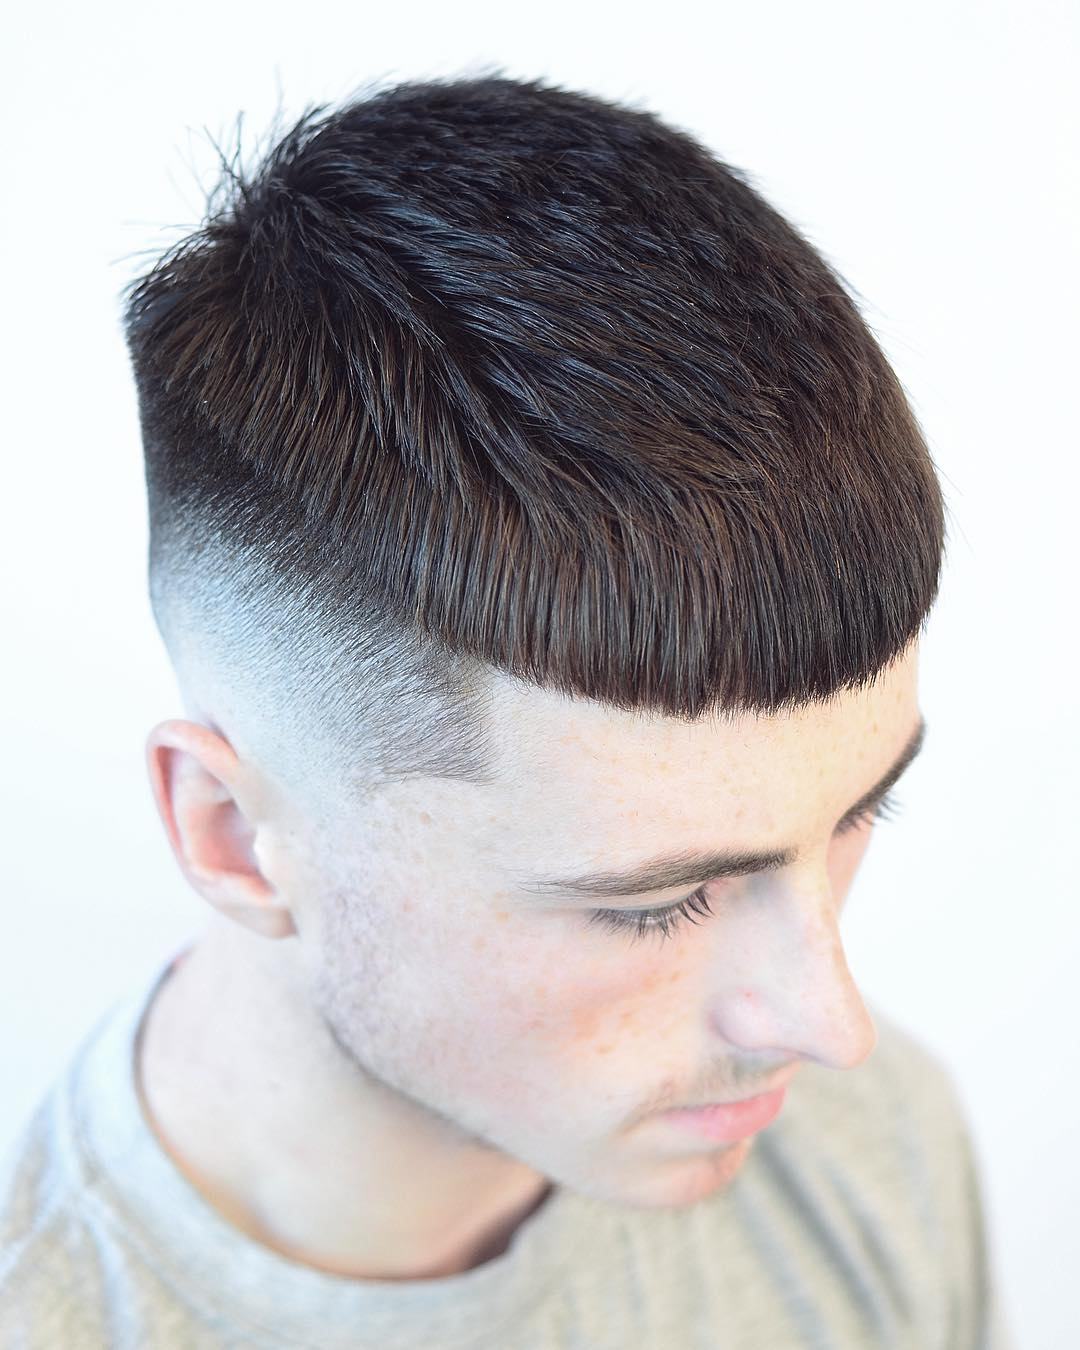 Crop haircut blunt bangs men